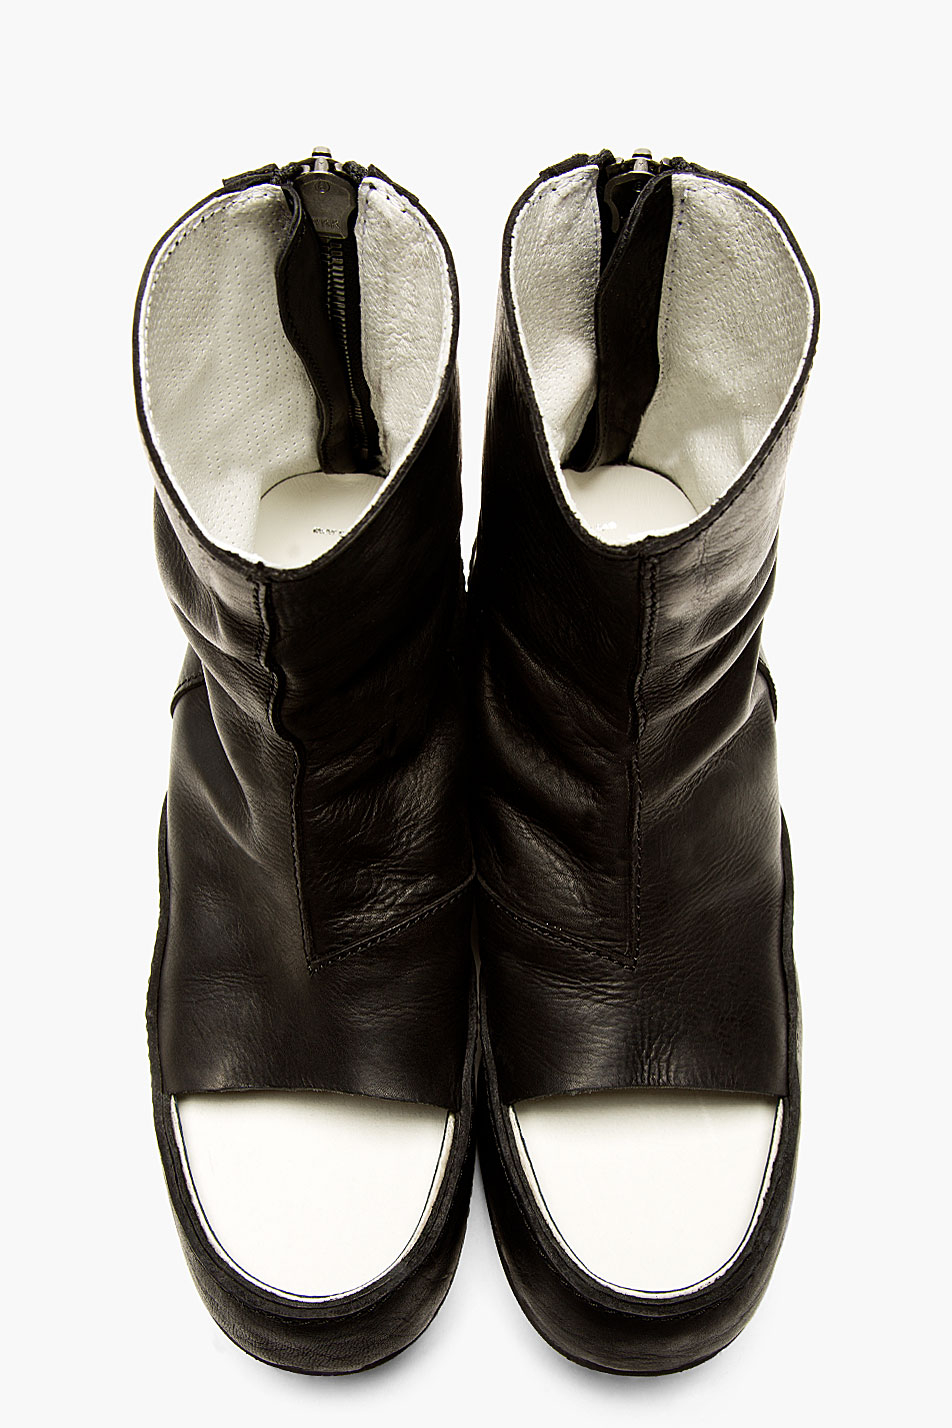 Julius Black Leather Open Toe Boots In Black For Men Lyst